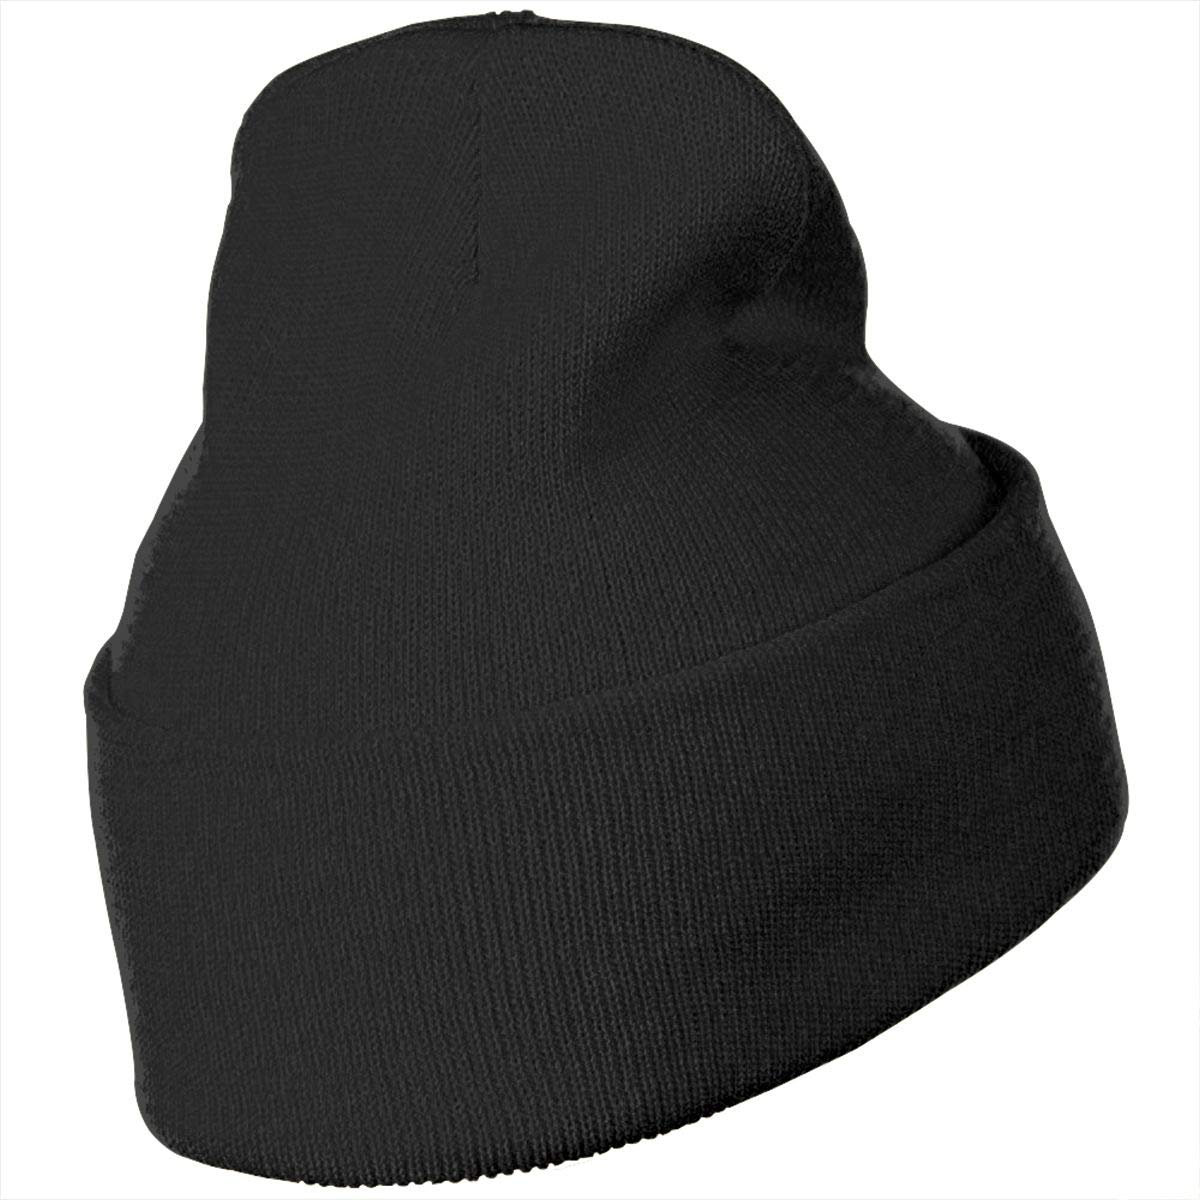 JimHappy Yummy Burger Hat for Men and Women Winter Warm Hats Knit Slouchy Thick Skull Cap Black